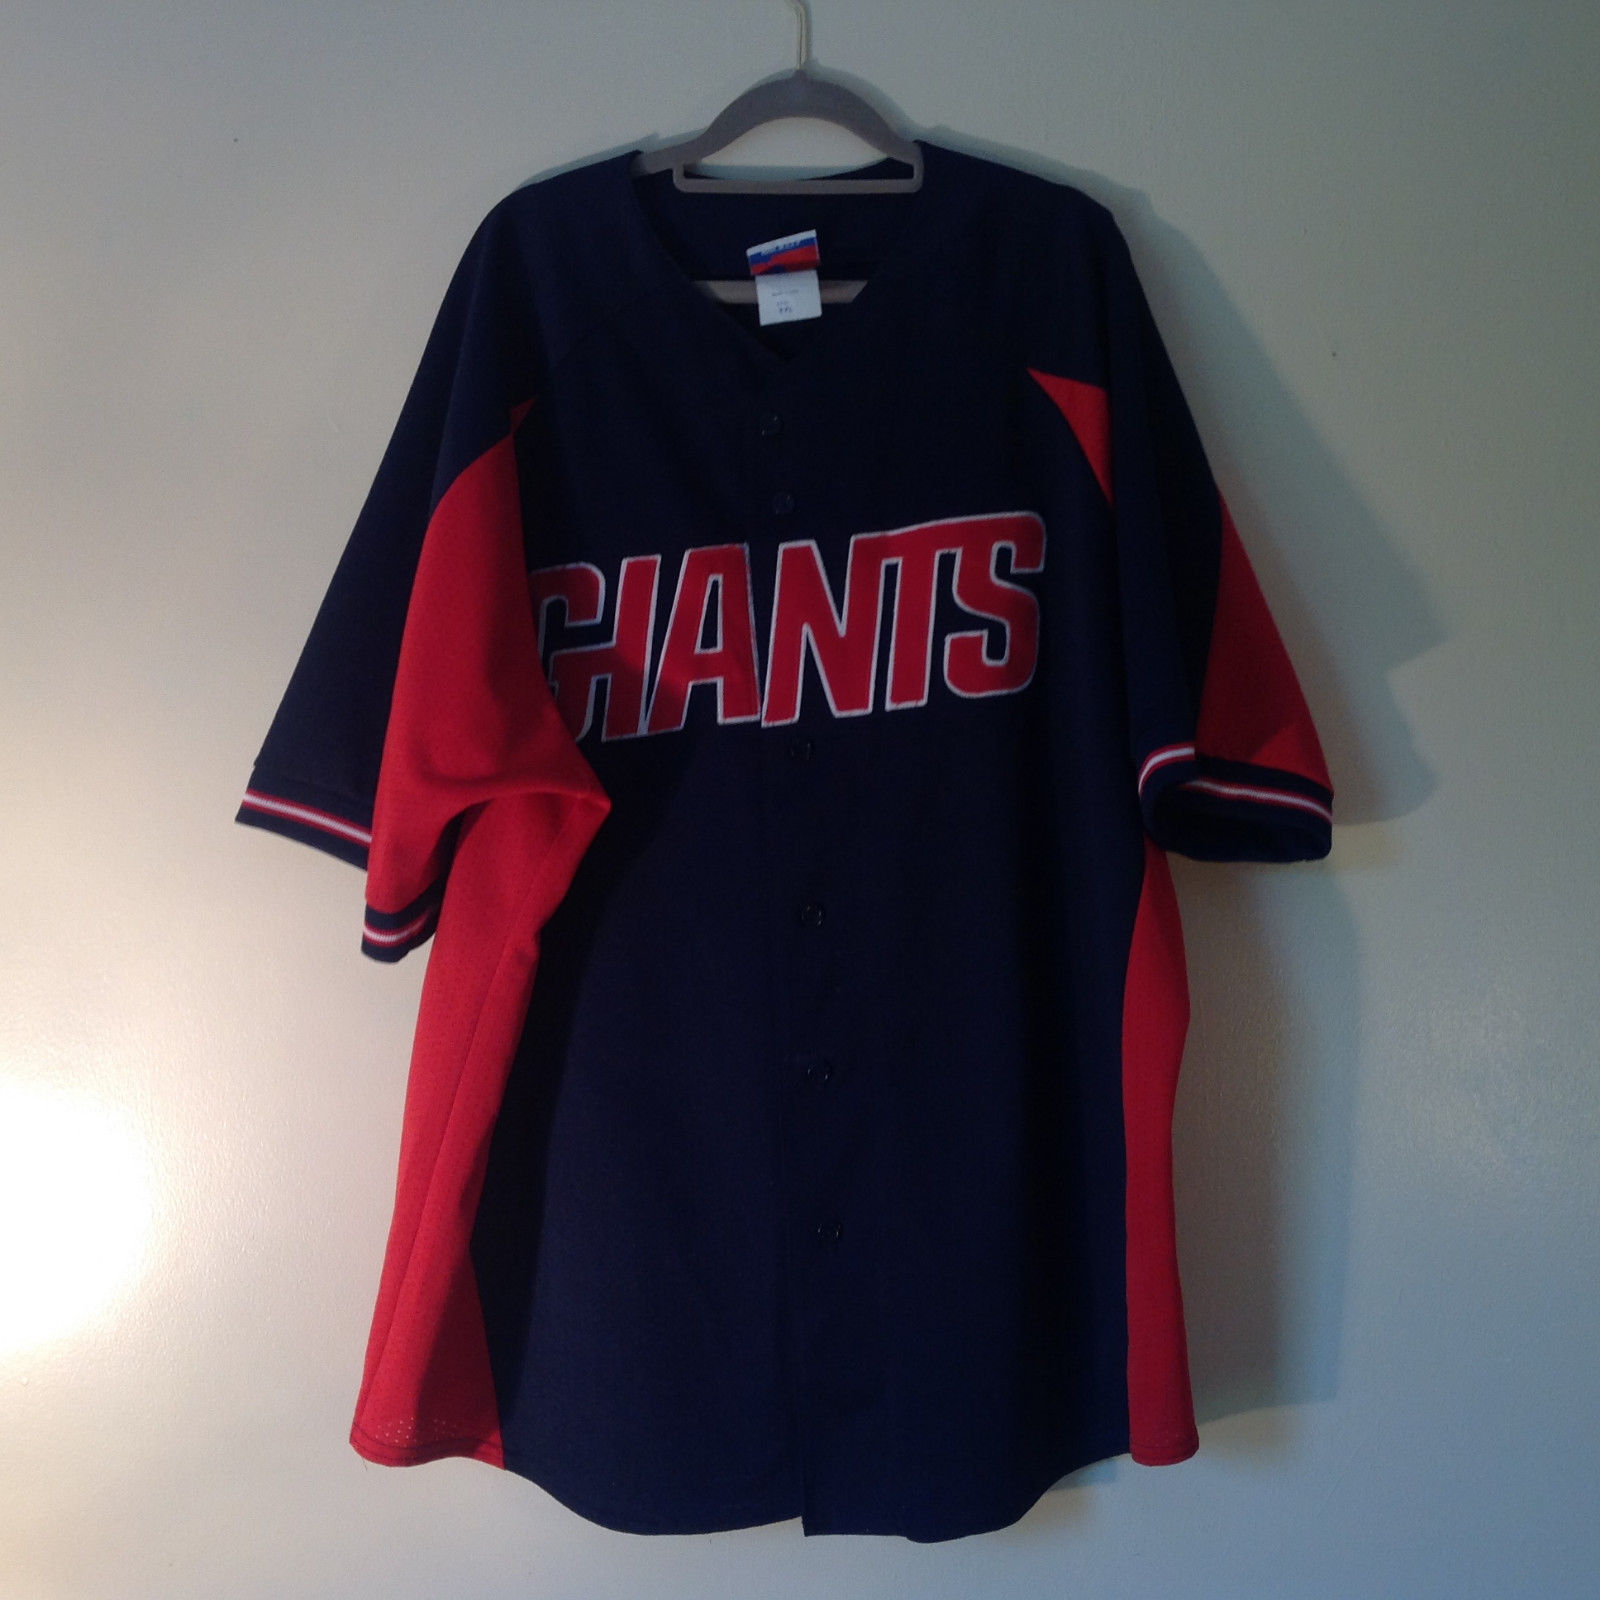 Majestic GIANTS Short Sleeve Navy Blue Red and White Button Down Shirt Size XXL